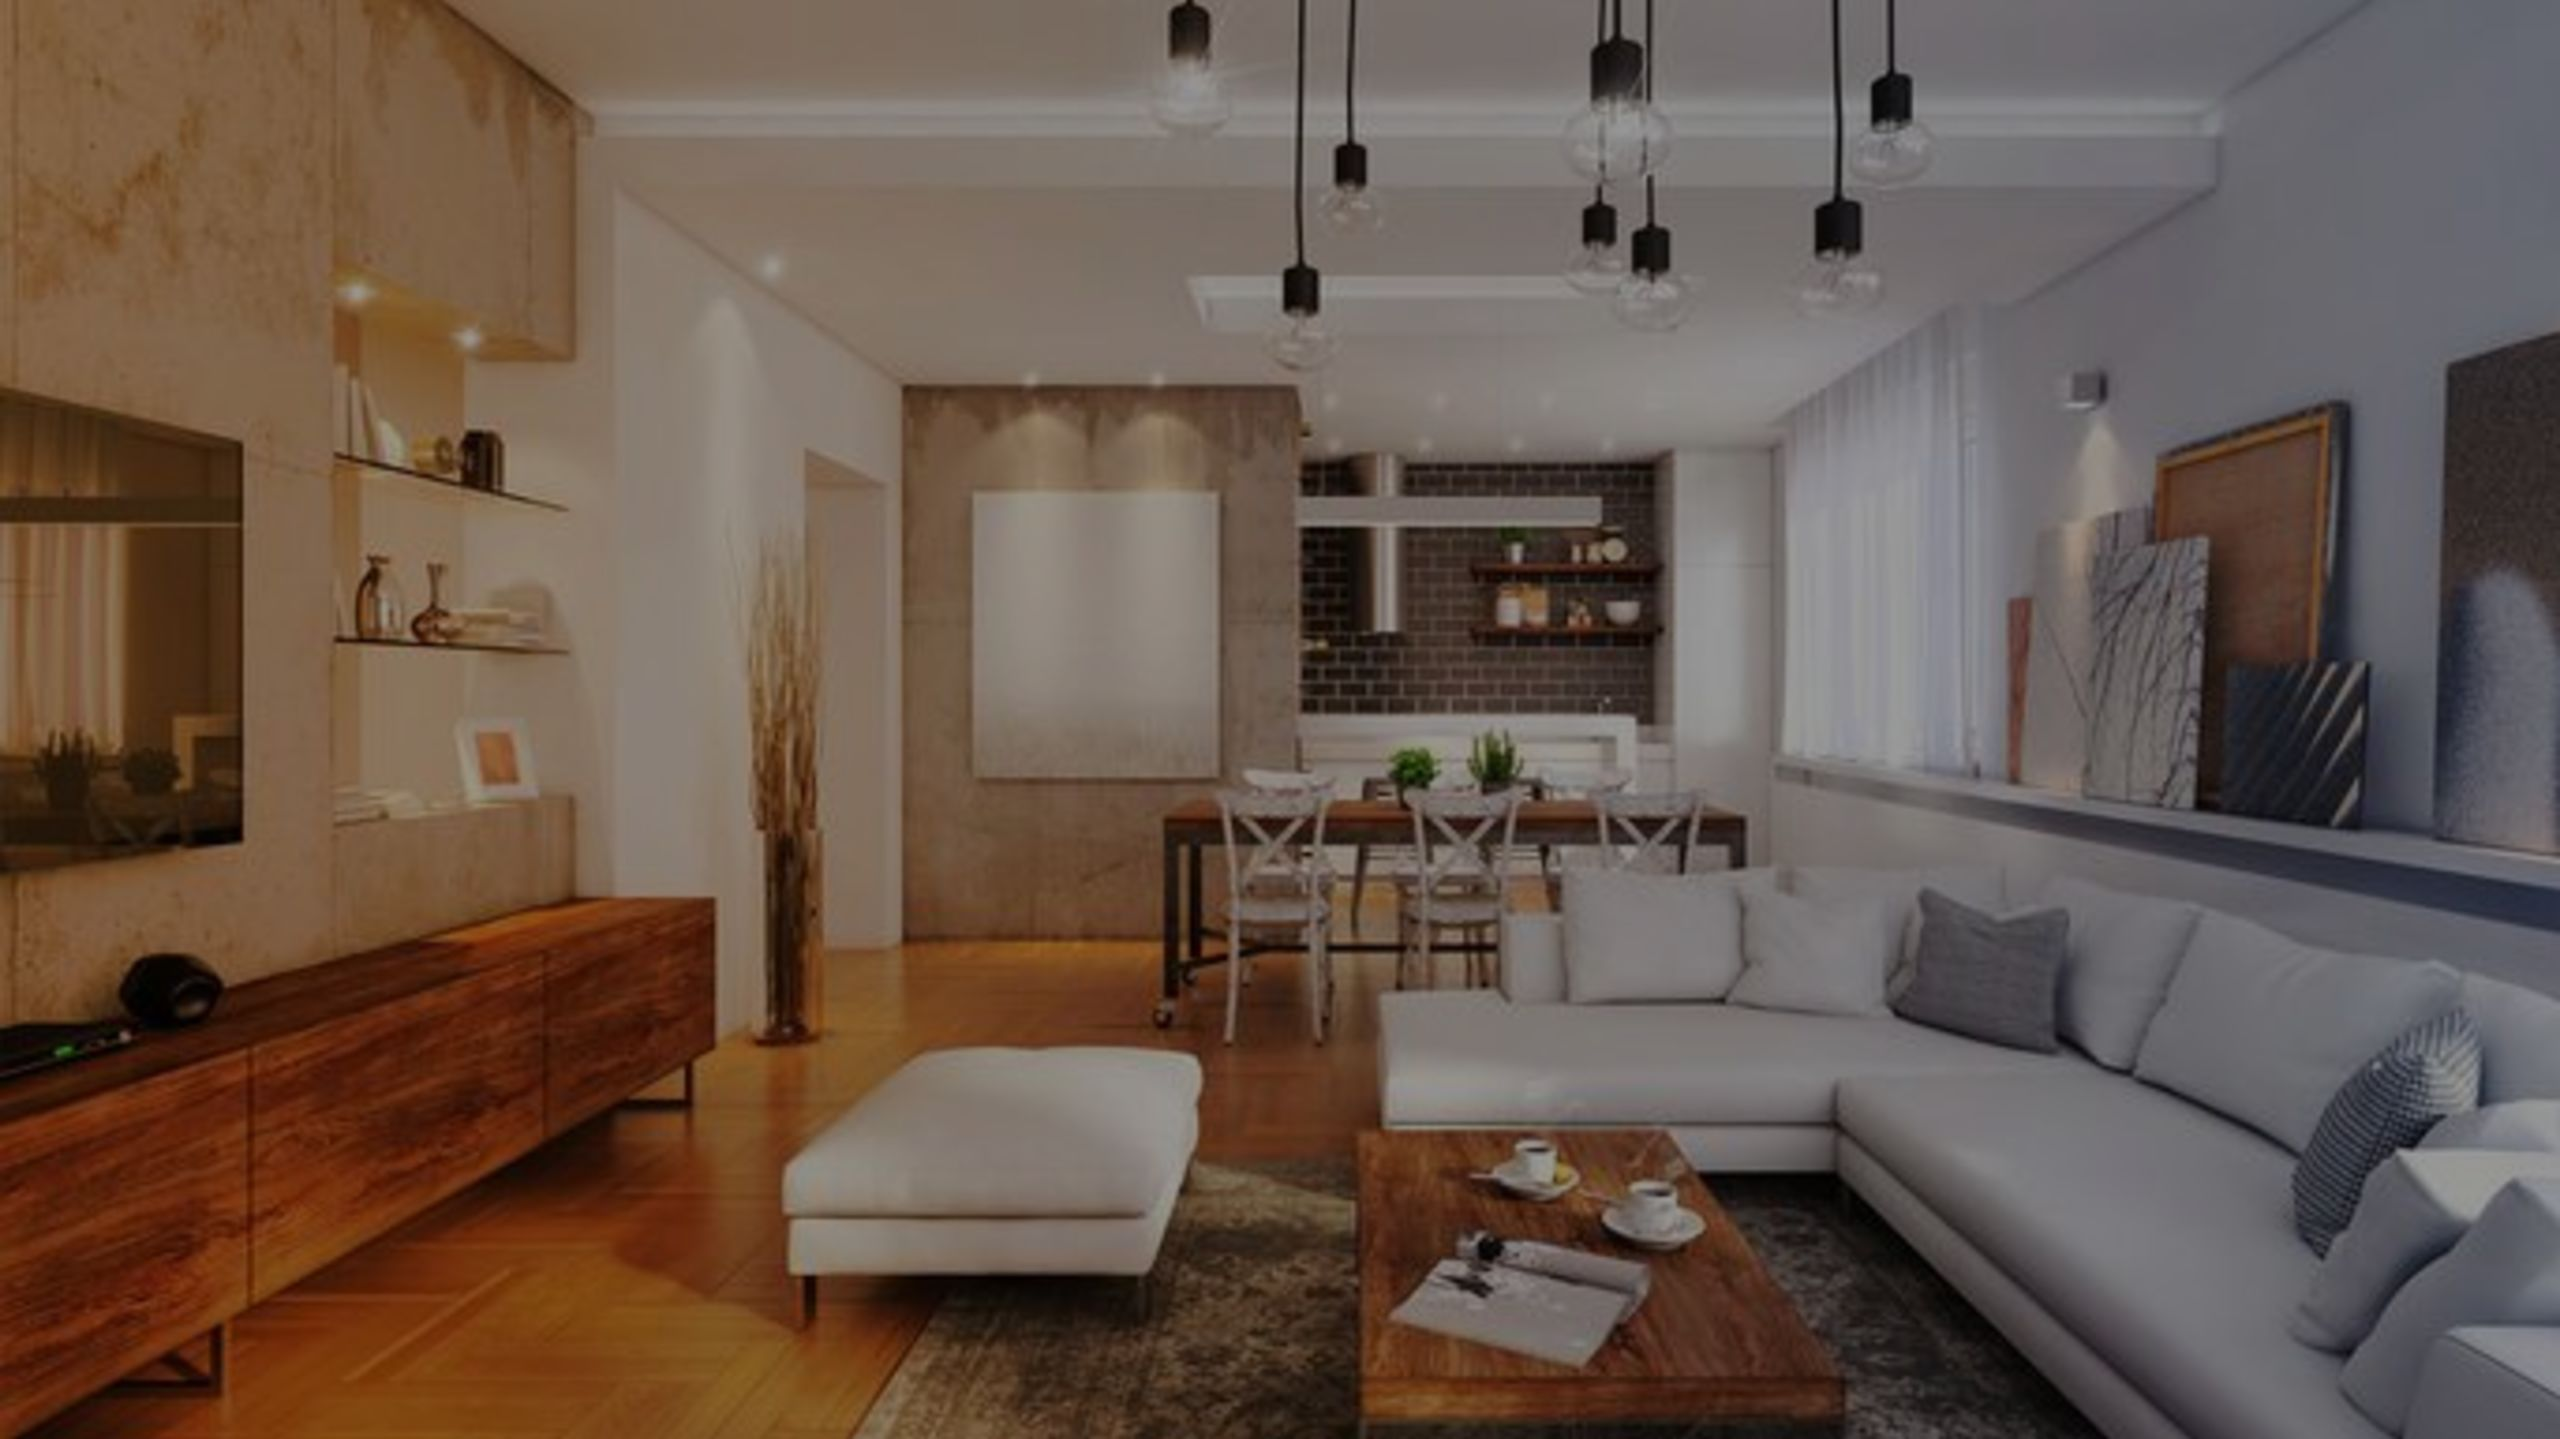 HERE'S THE ONE ROOM WHERE HOME STAGING WILL PAY OFF THE MOST